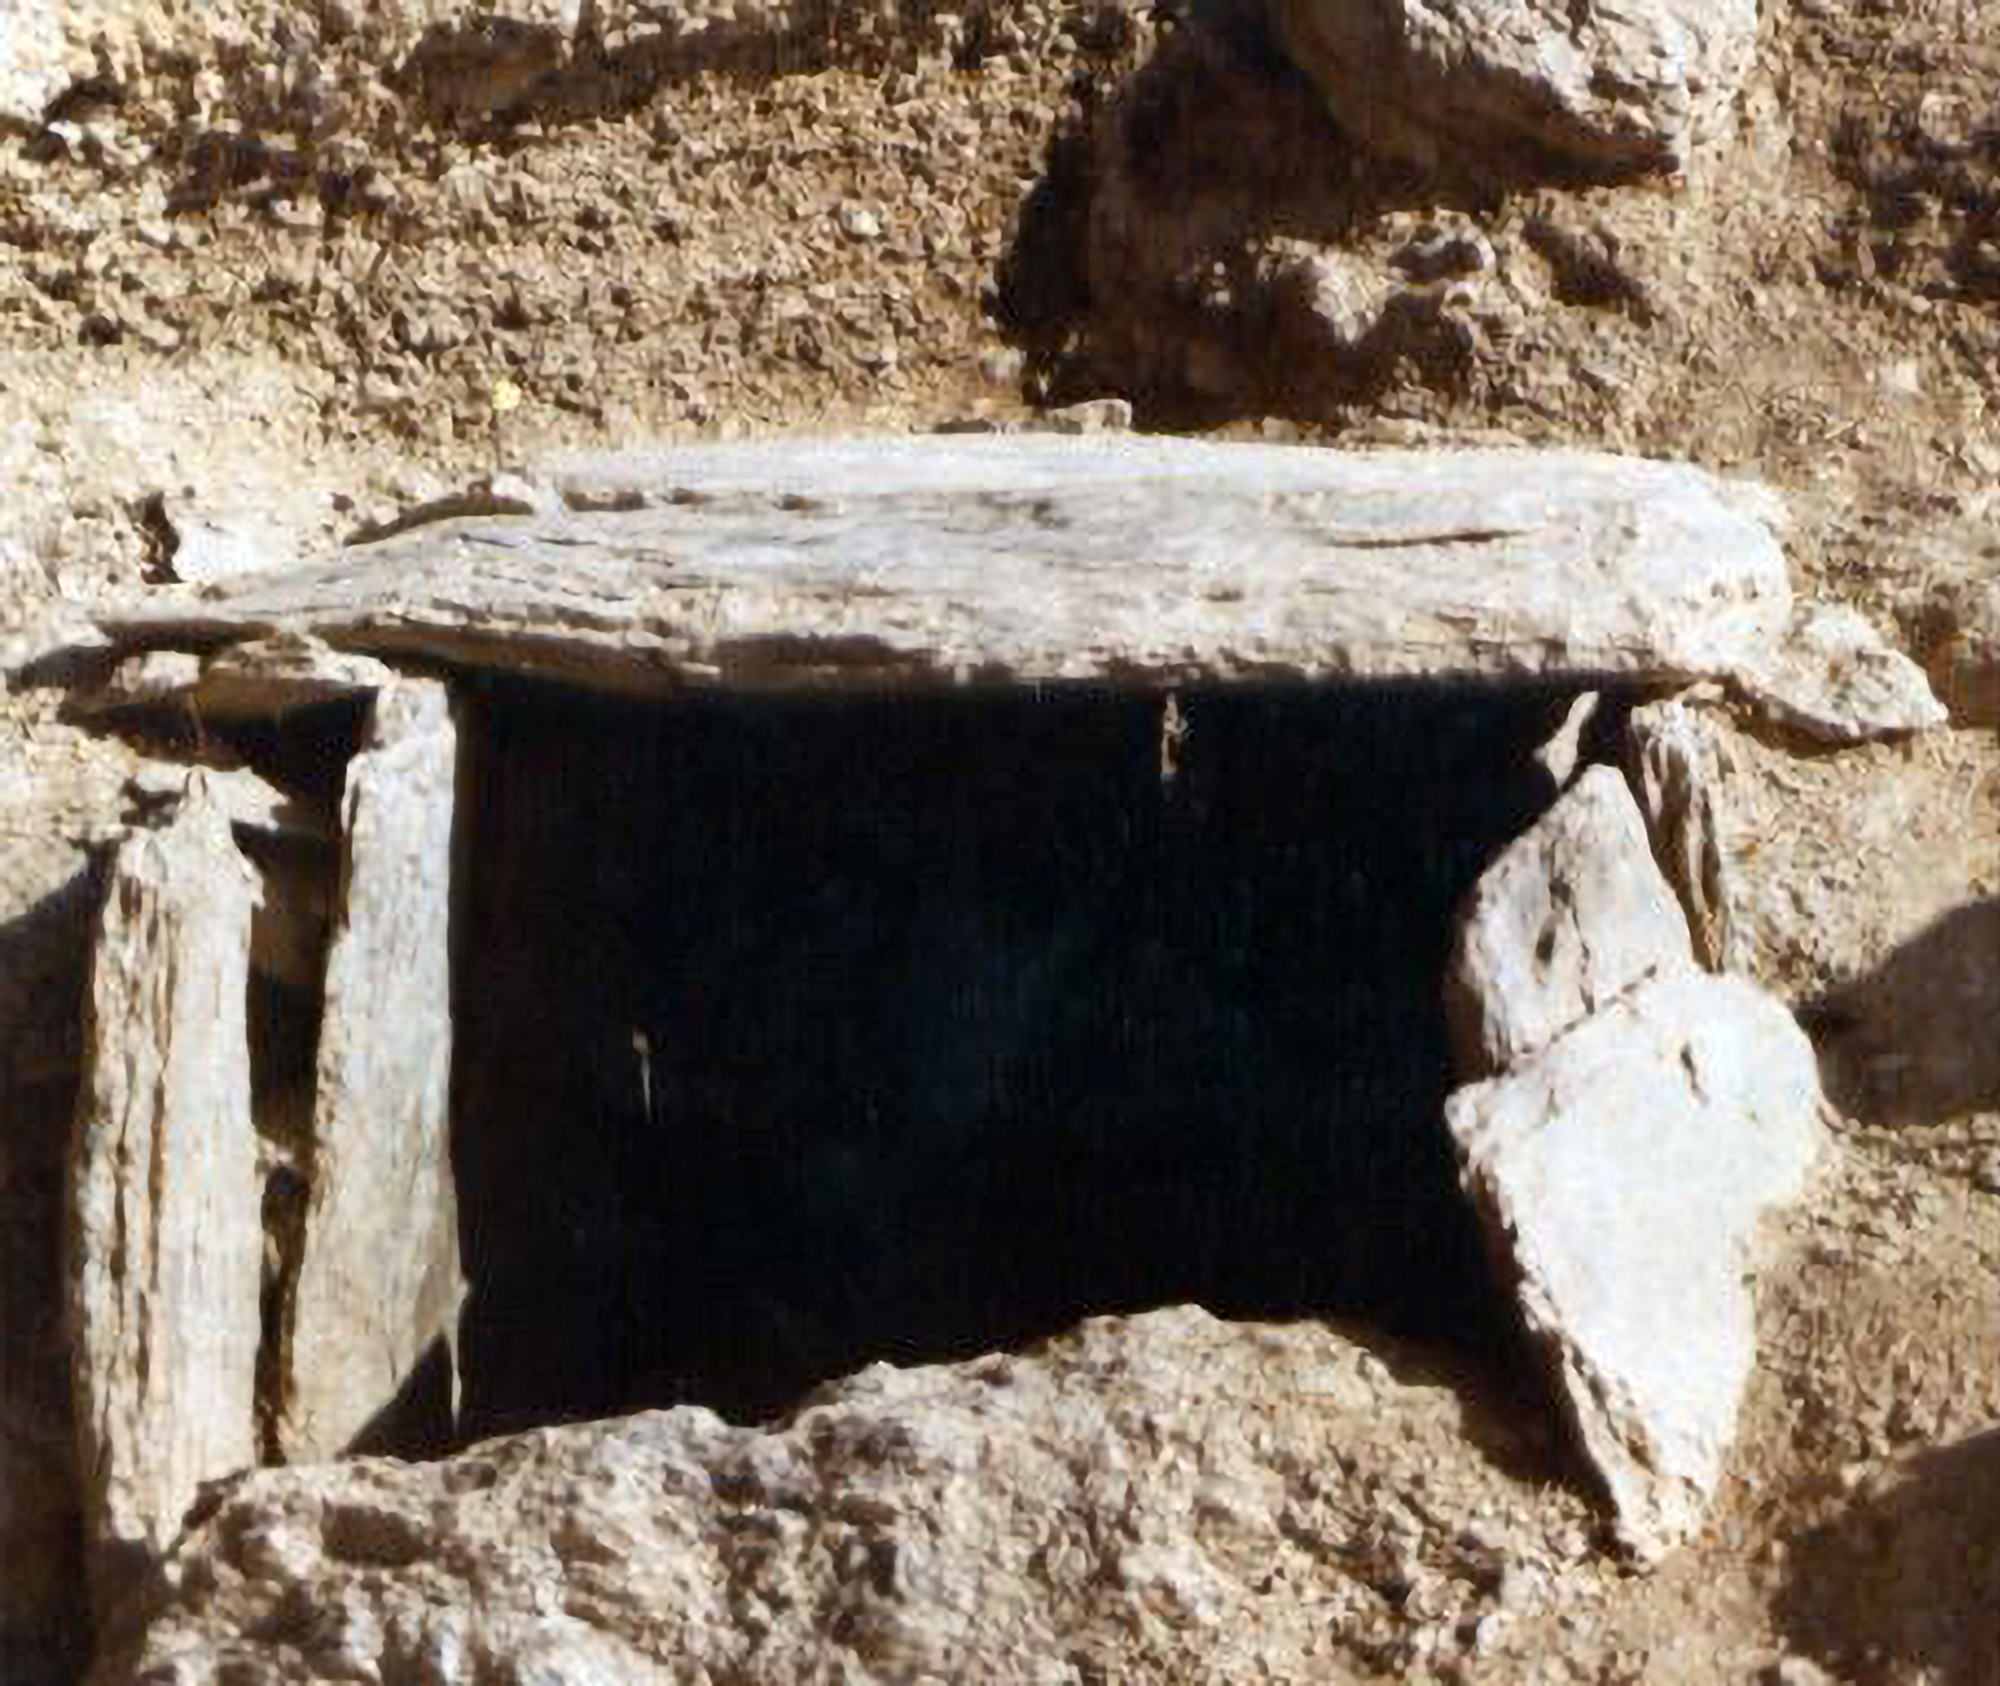 The burial of the adult male. (Gobierno de Andorra/Real Press).